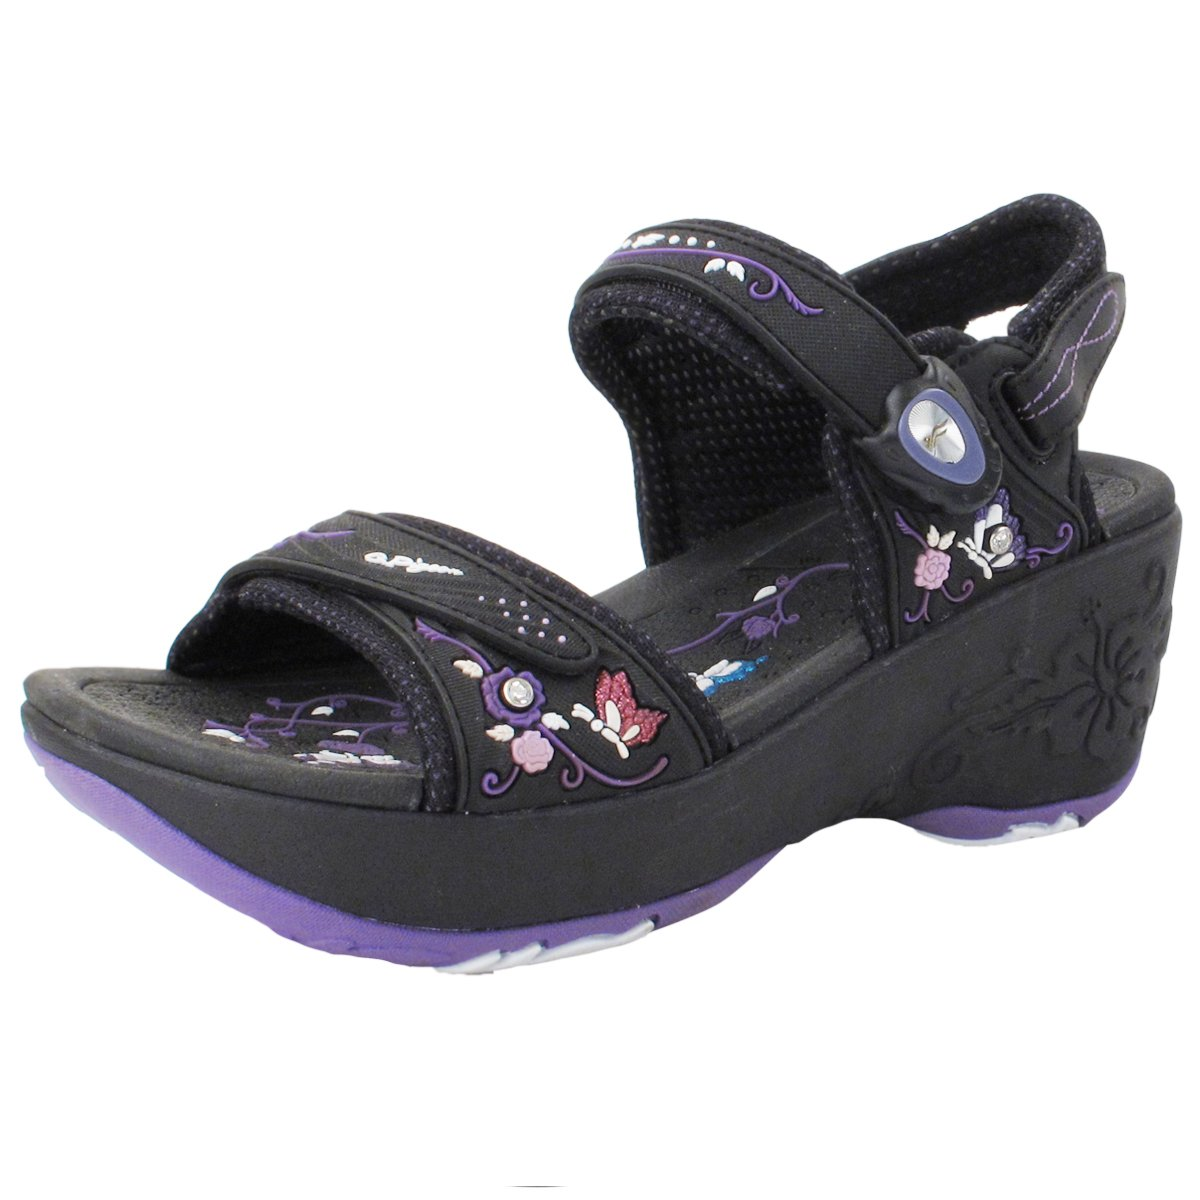 Gold Pigeon GP5974W (Size 4.5-8) Easy Magnetic Snap Lock Closure Light Weight Comfort Platform Sandals (Size 4.5-8) B0794HQ7ZH EU36: US 5/5.5|Black Purple